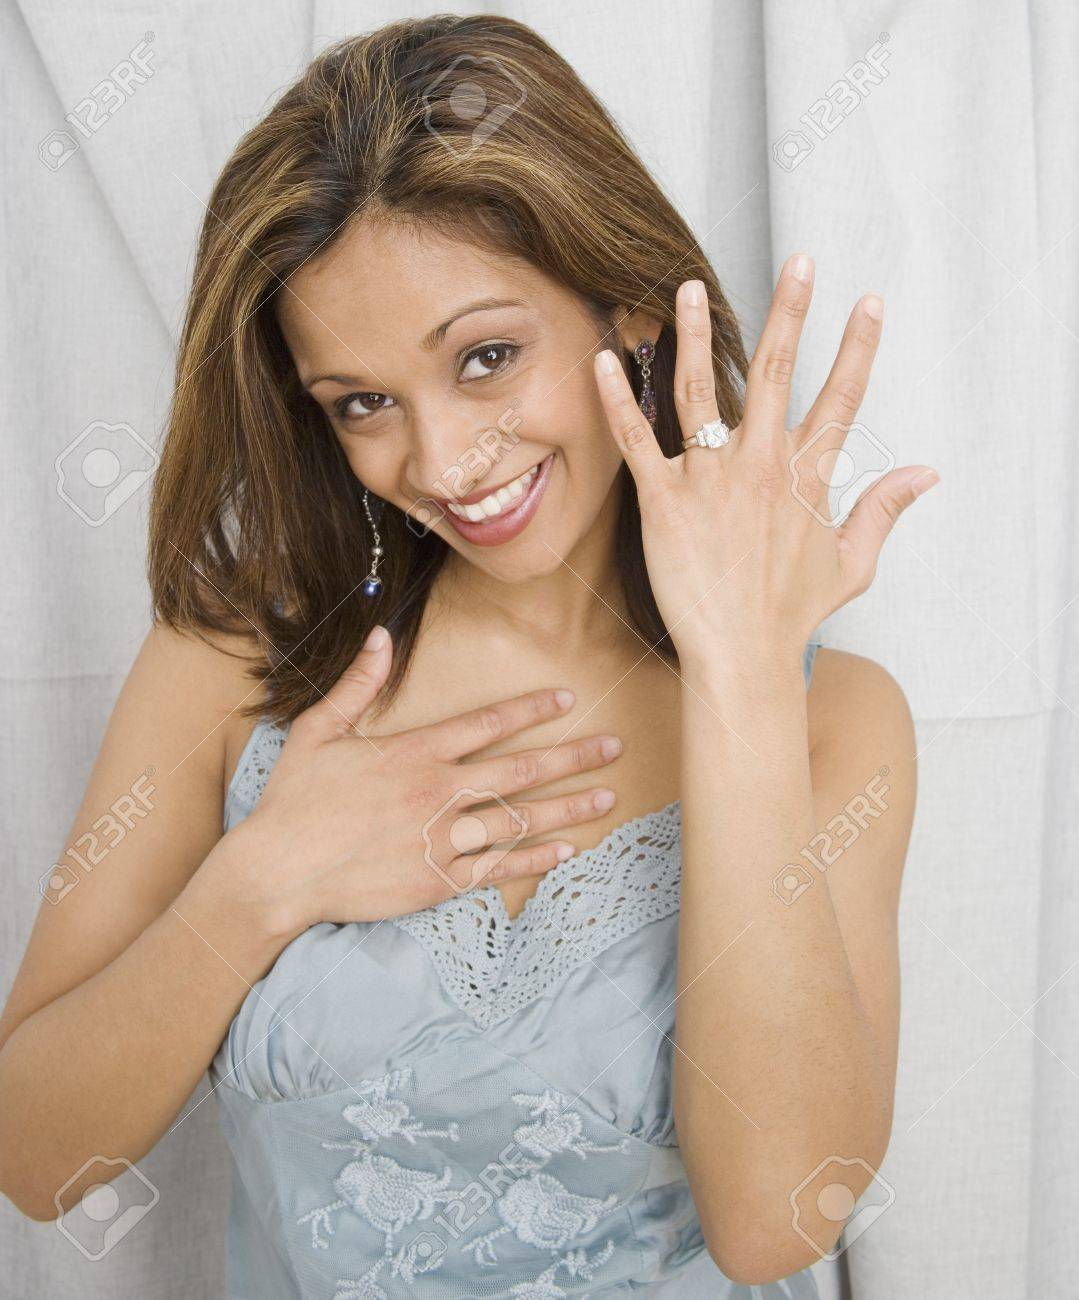 Indian Woman Showing Off Engagement Ring Stock Photo Picture And